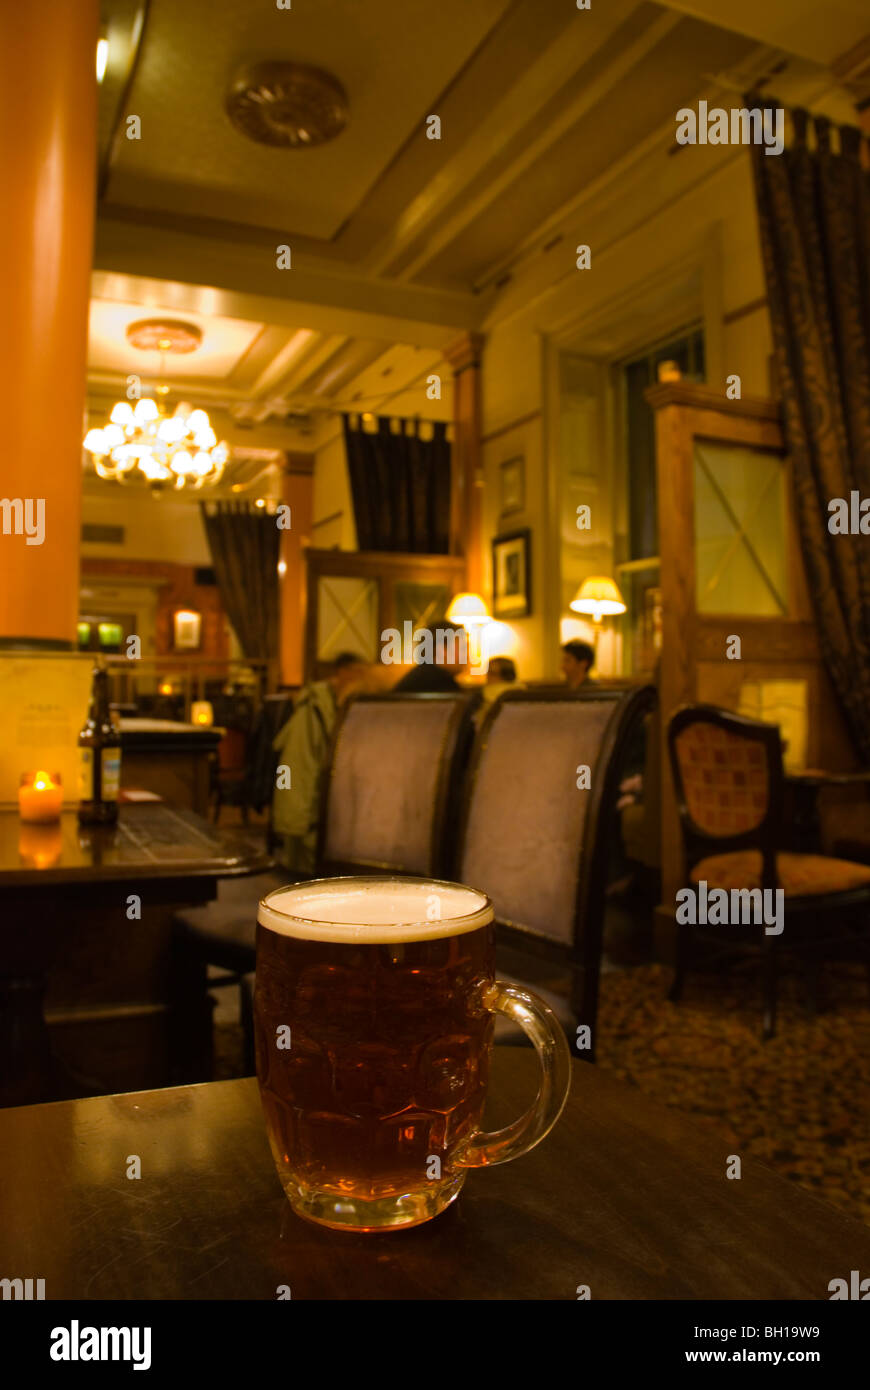 Pint of London Pride beer in Bank pub Manchester England UK Europe - Stock Image